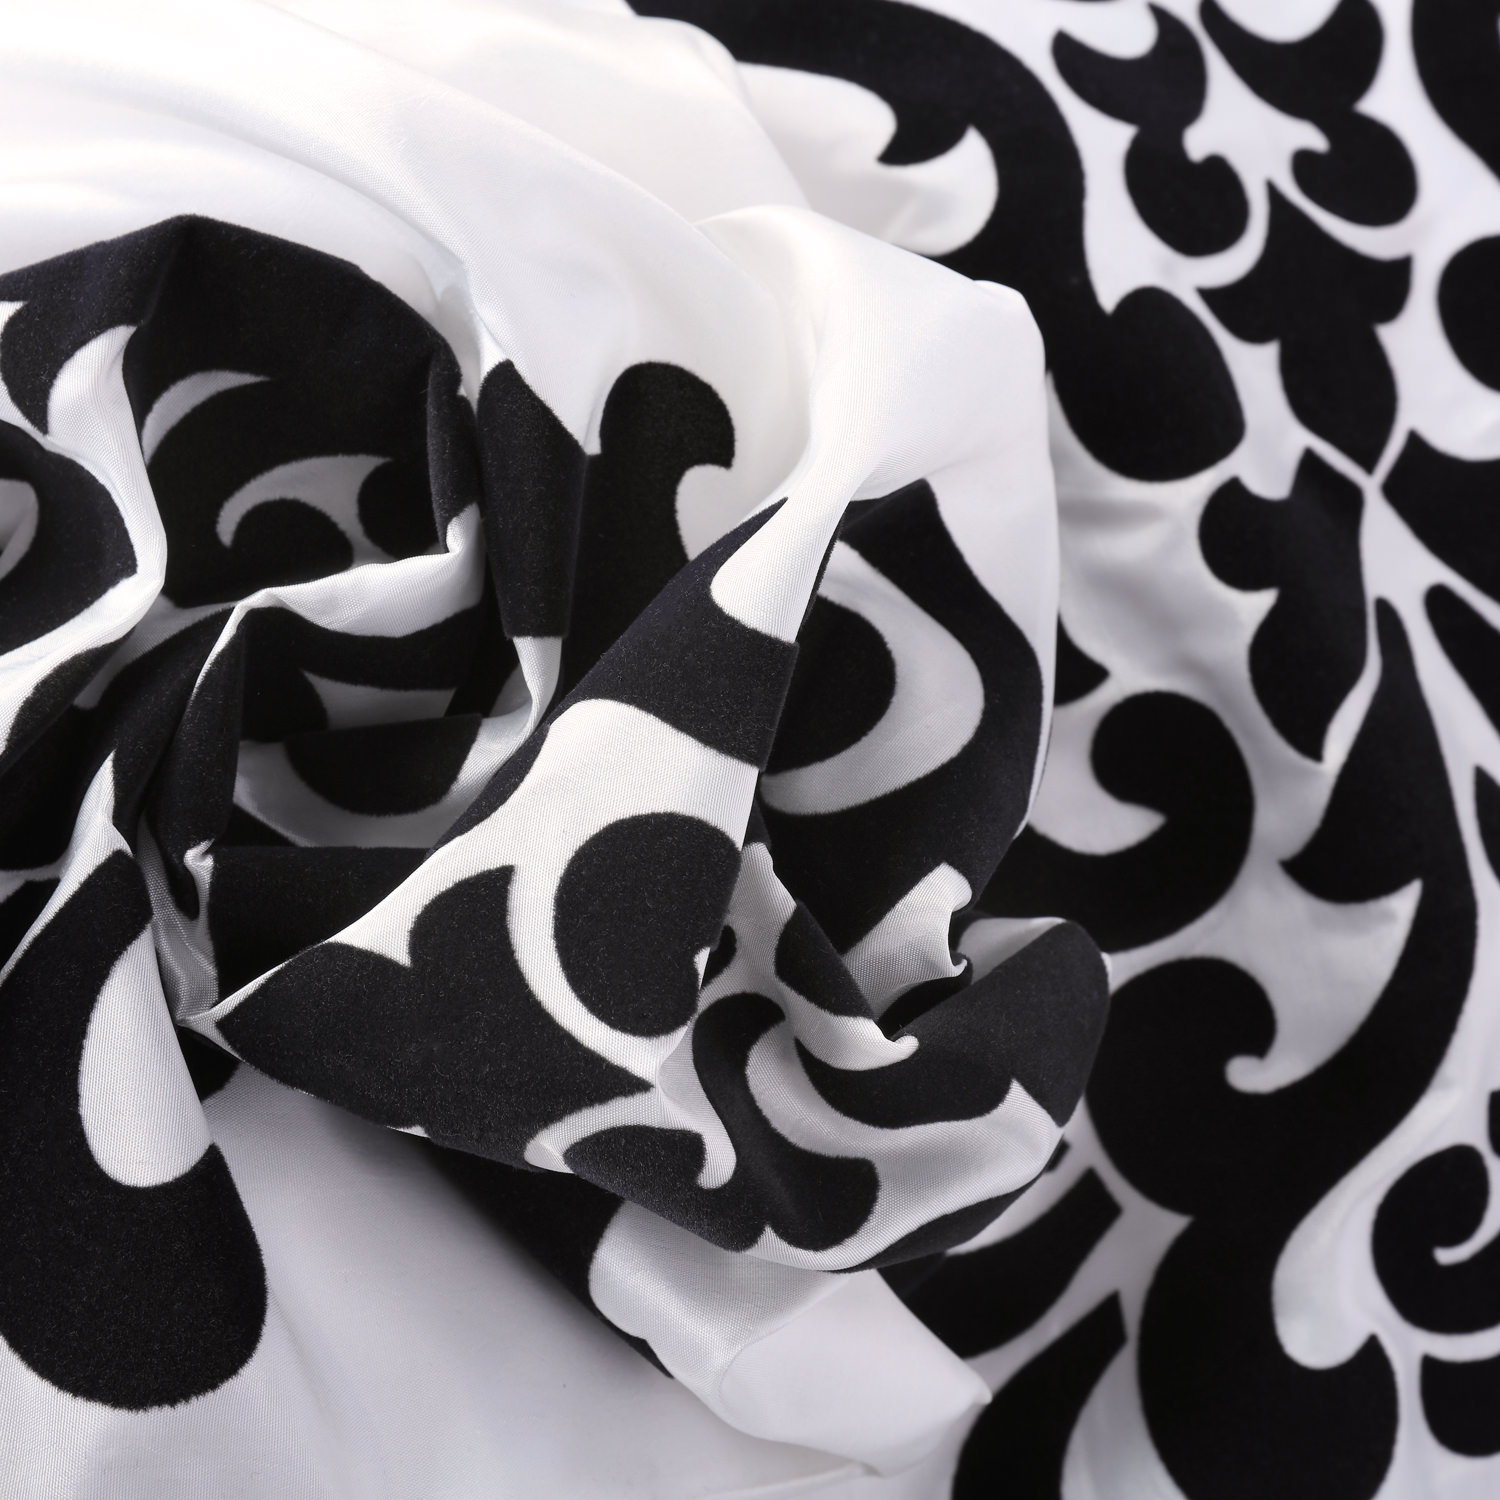 Castle White & Black Designer Flocked Fabric